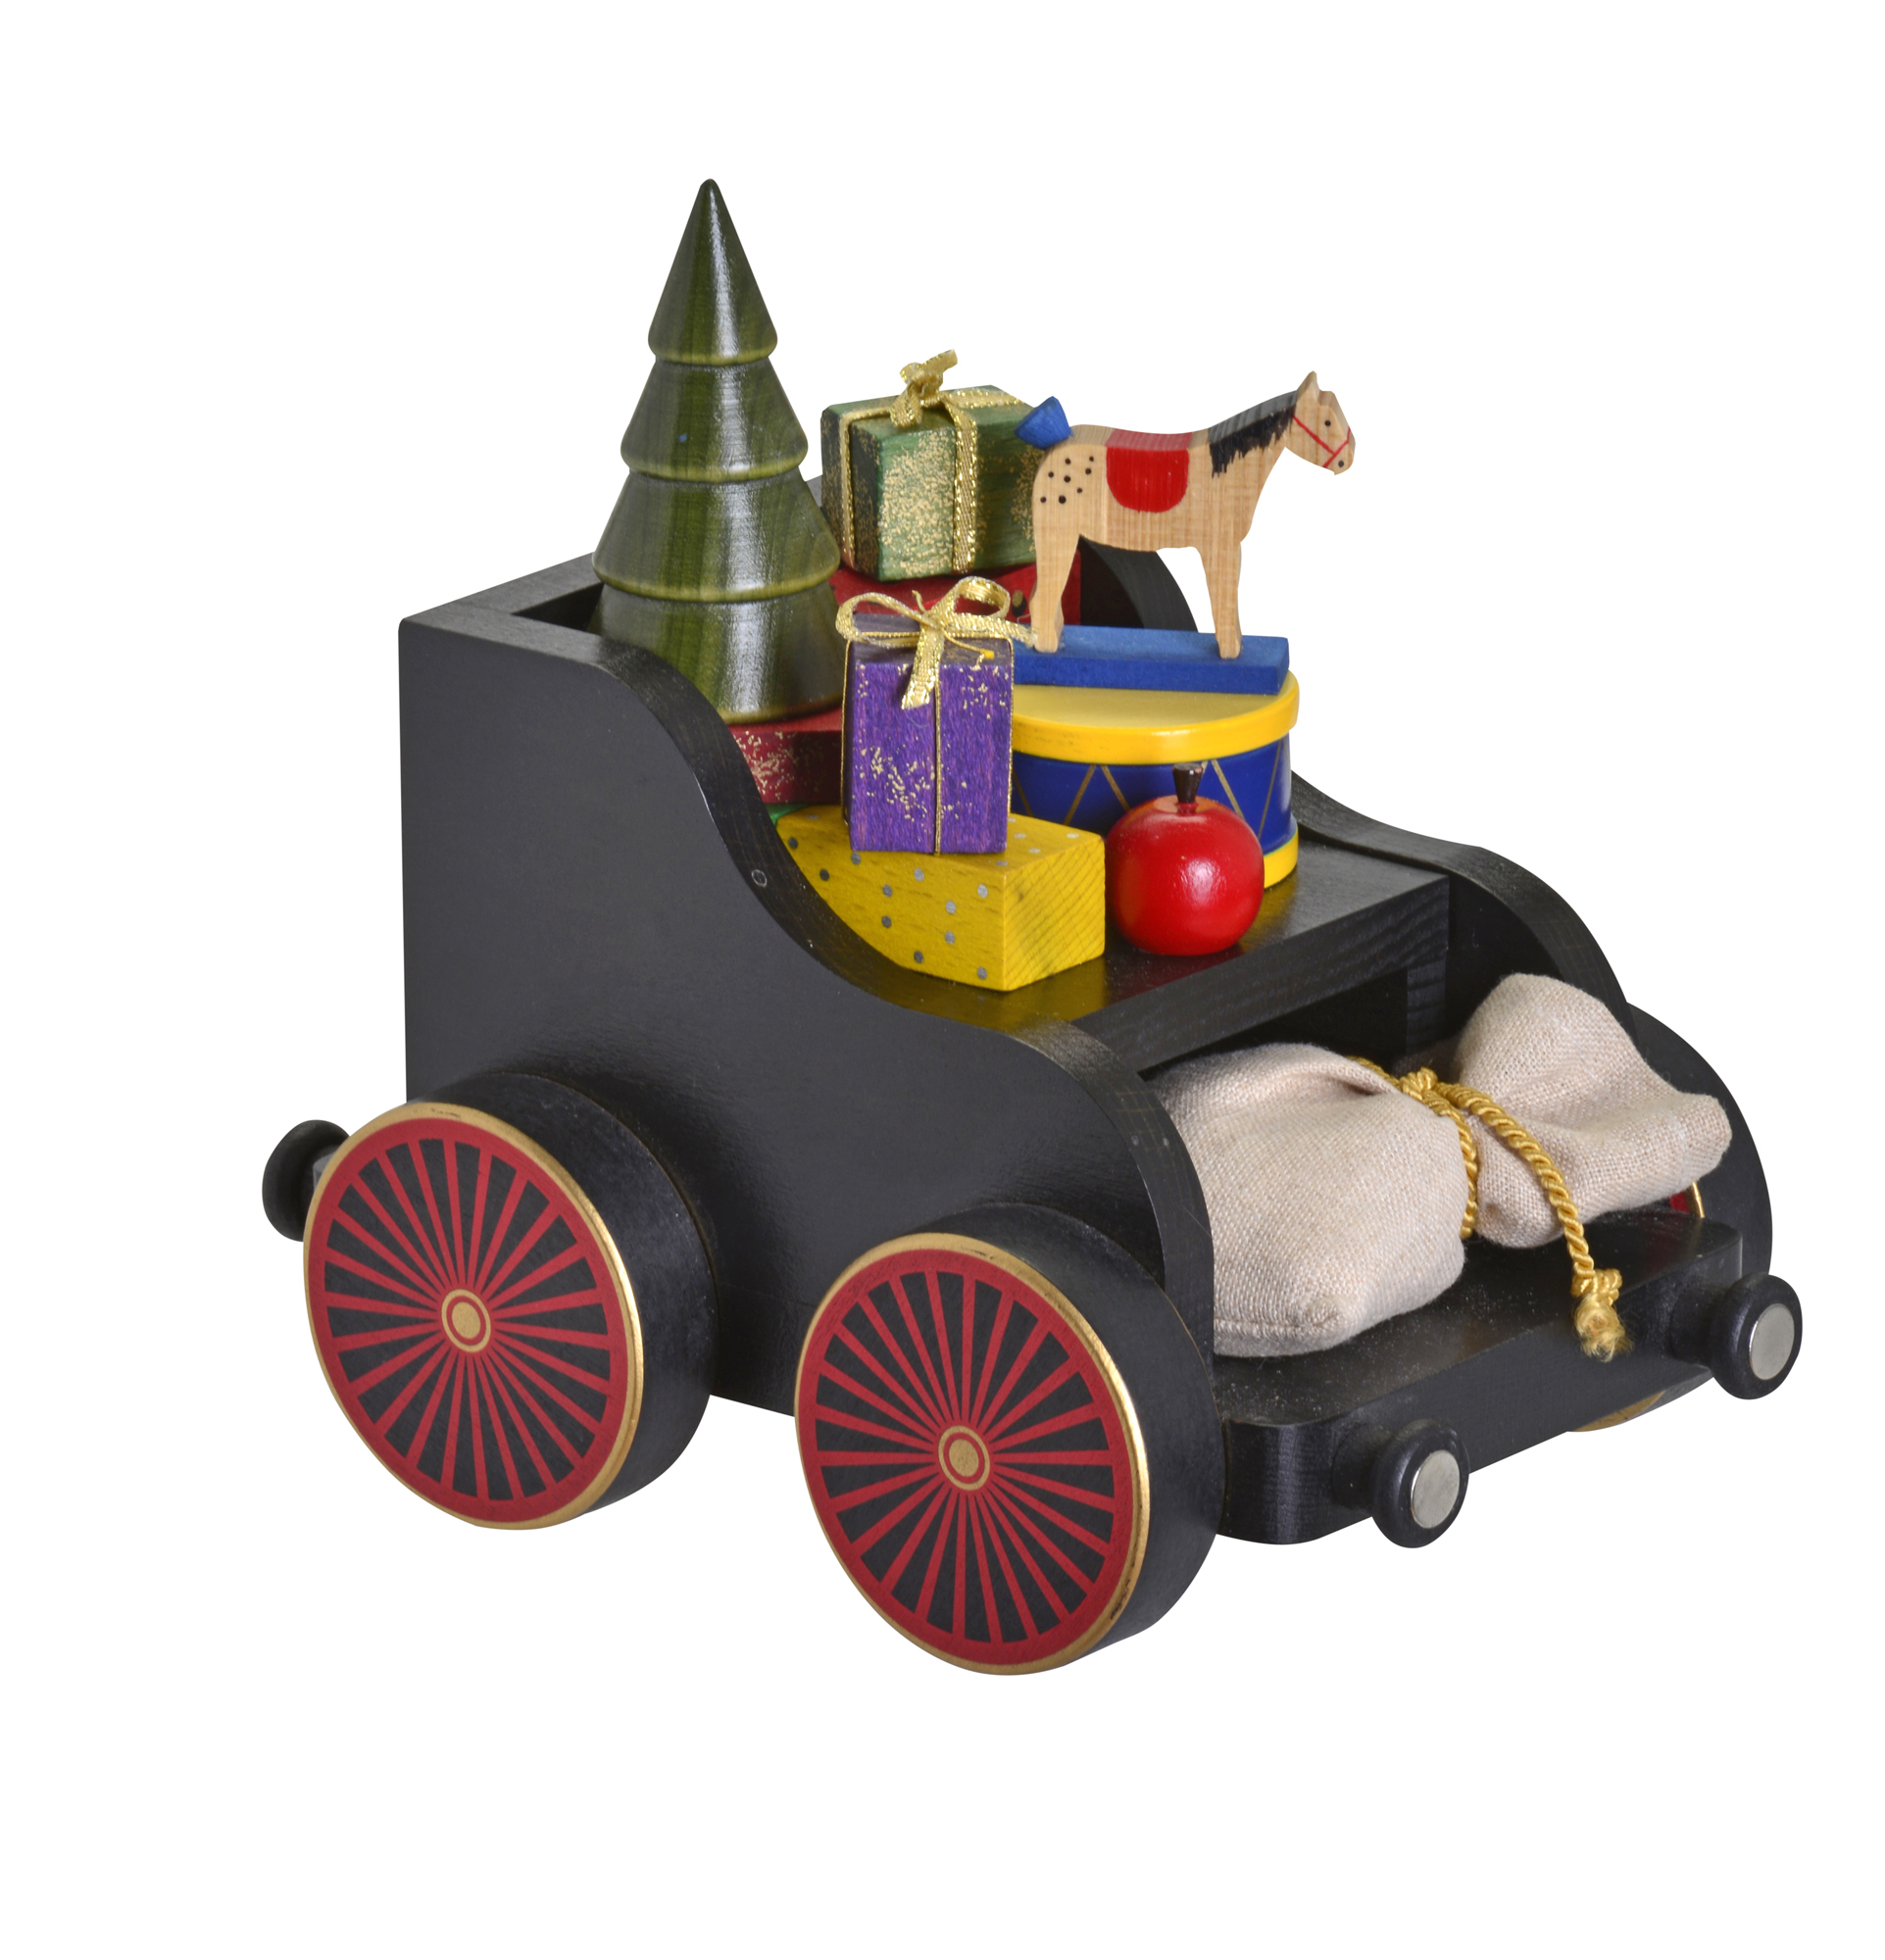 Wagon for Train, Full of Christmas Toys! – 5.1″